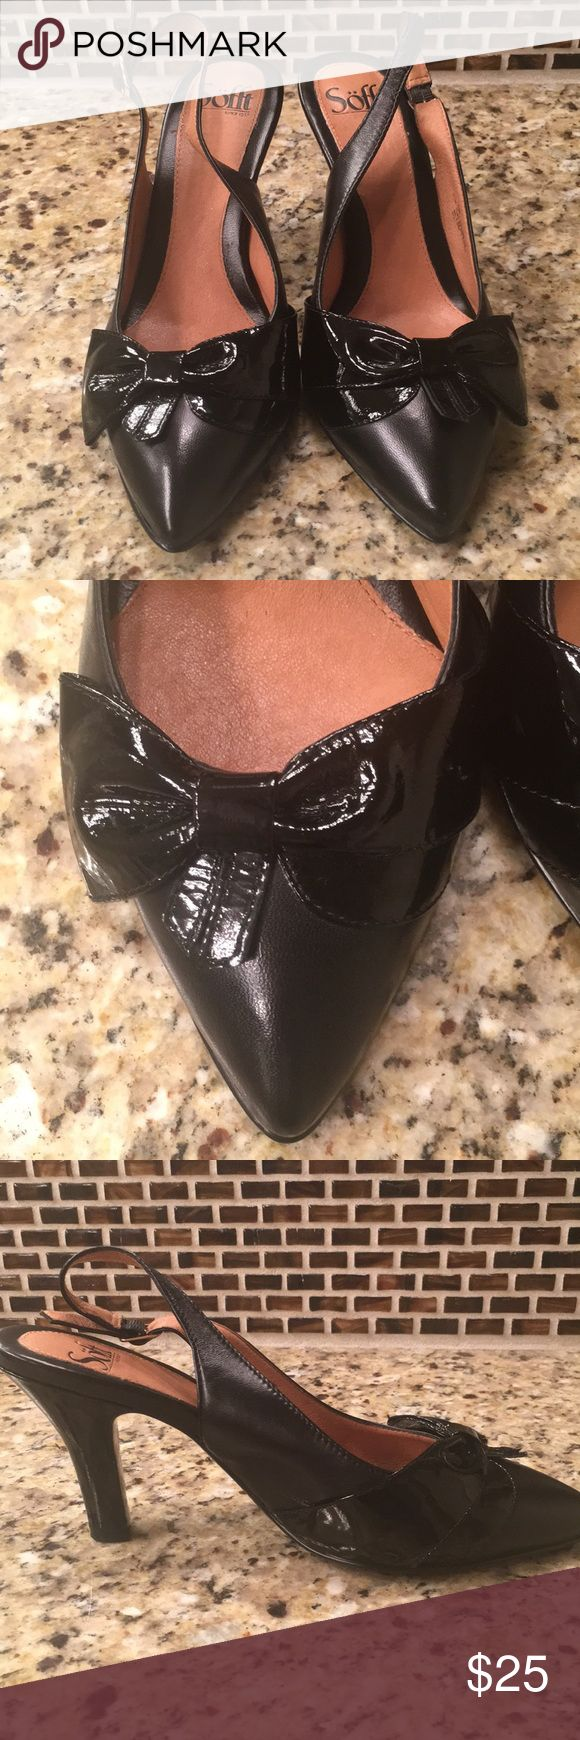 """Sofft Pointy Toe Sling Back Pumps Super cute sling back pumps. Leather with patent leather bow detail. Worn only a few times. 3"""" heels. Smoke free home. Sofft Shoes Heels"""